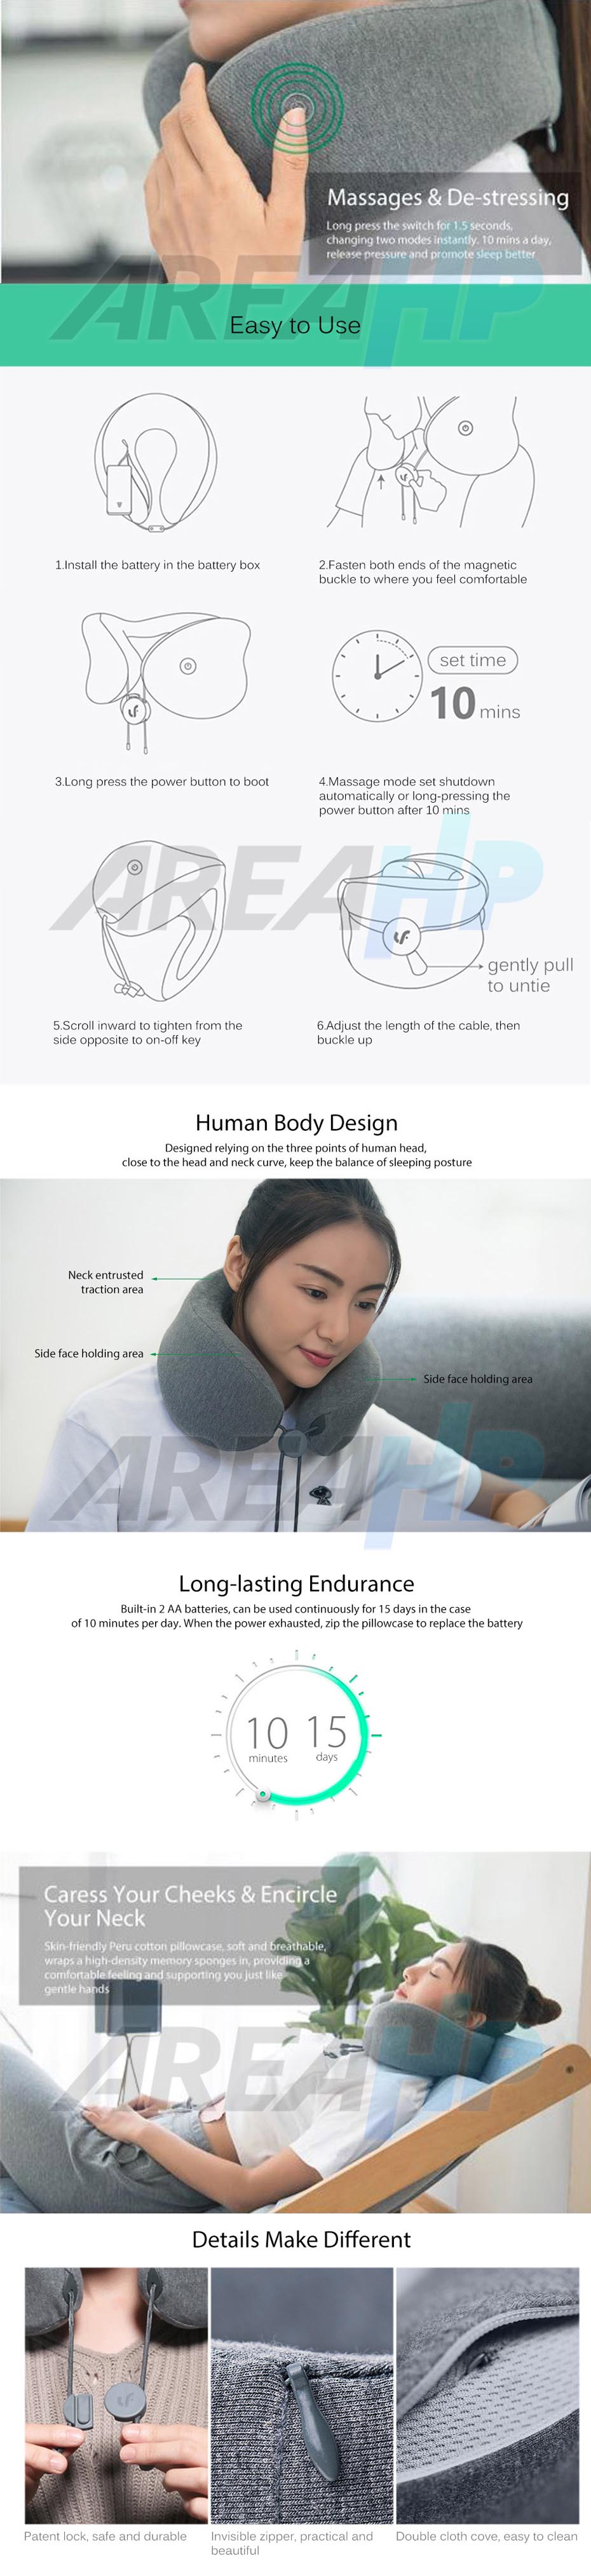 Xiaomi Mijia Universal Neck Massager Pillow Relax Muscle Therapy Original Overview